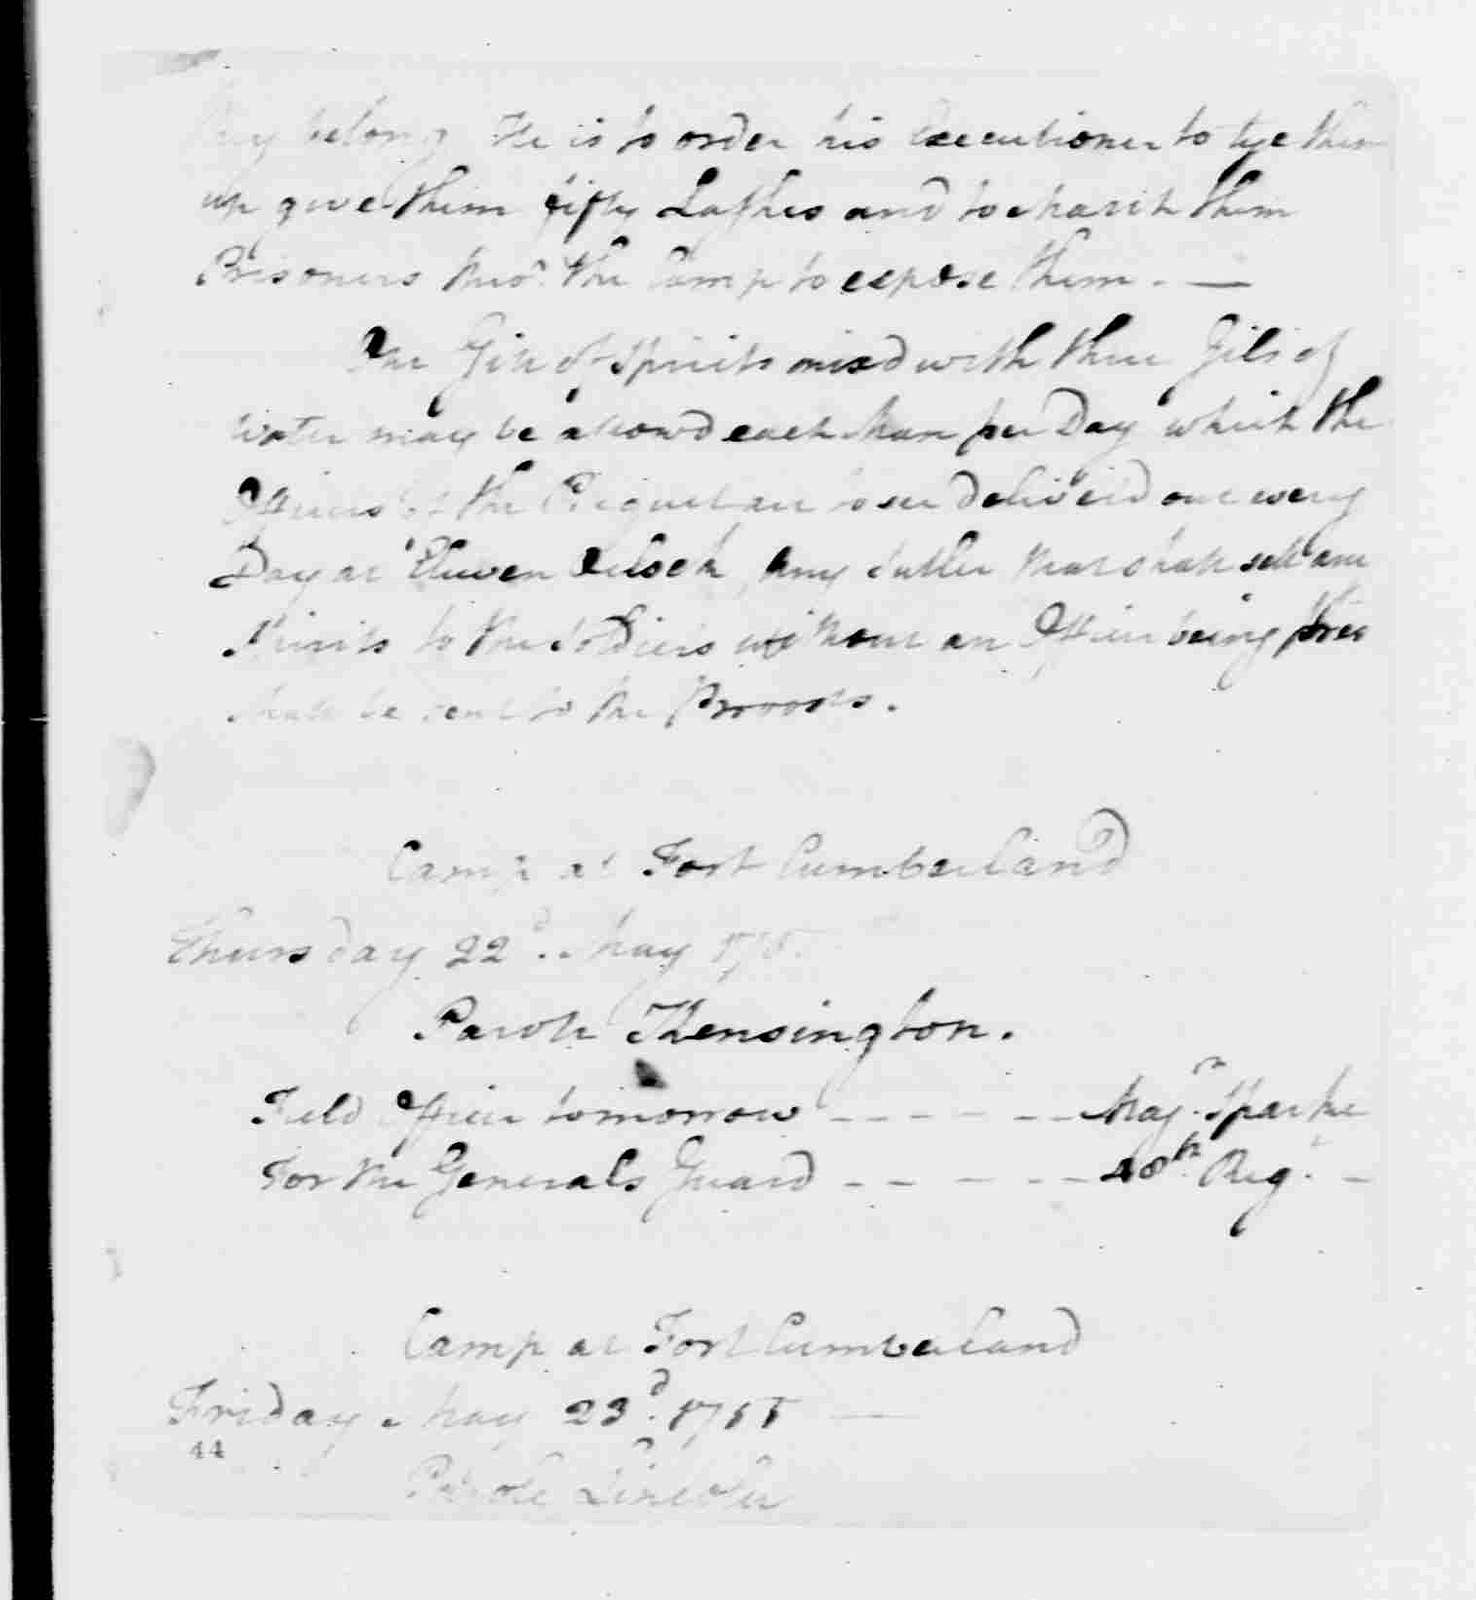 George Washington Papers, Series 6, Military Papers, 1755-1798, Subseries 6A, French and Indian War and the American Revolution, 1755-1783: British General Edward Braddock, Orderly Book, February 16-June 17, 1755